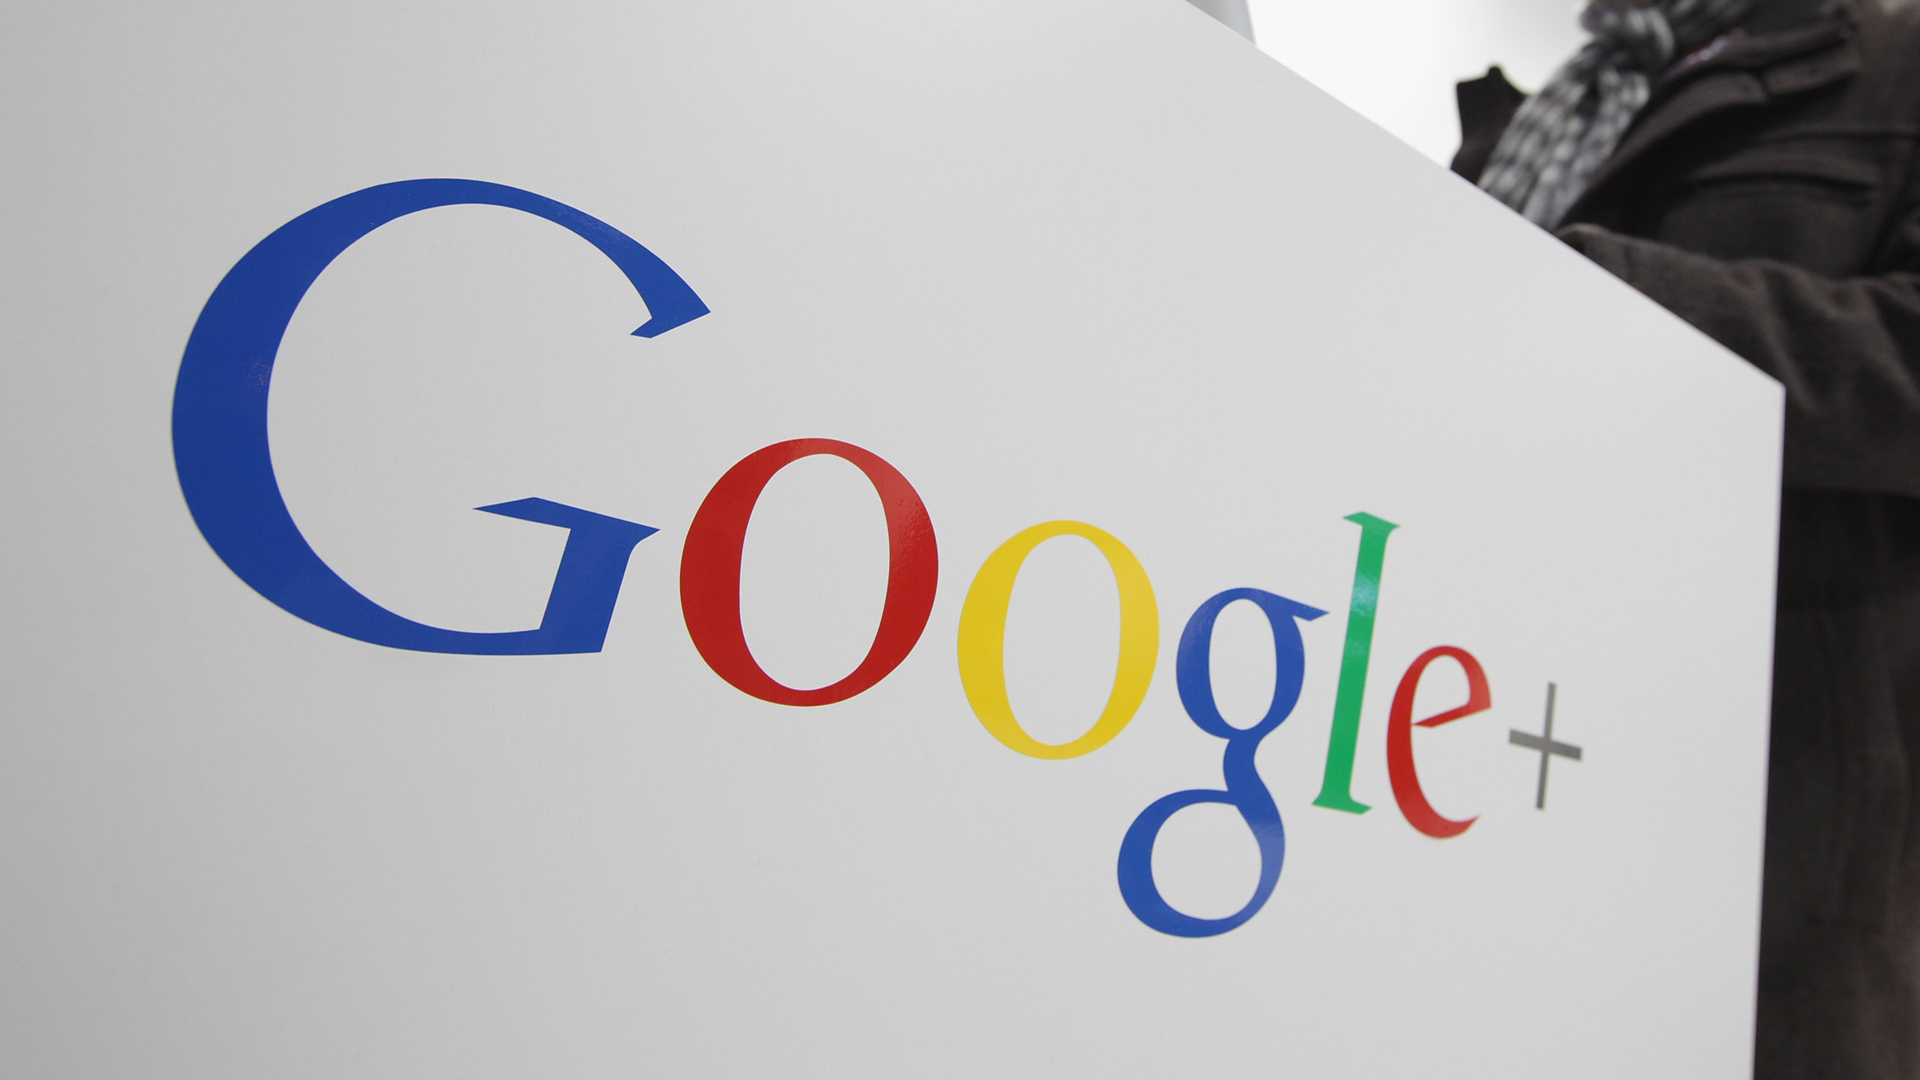 A Google+ sign is seen in a file photo. (Credit: Sean Gallup/Getty Images)